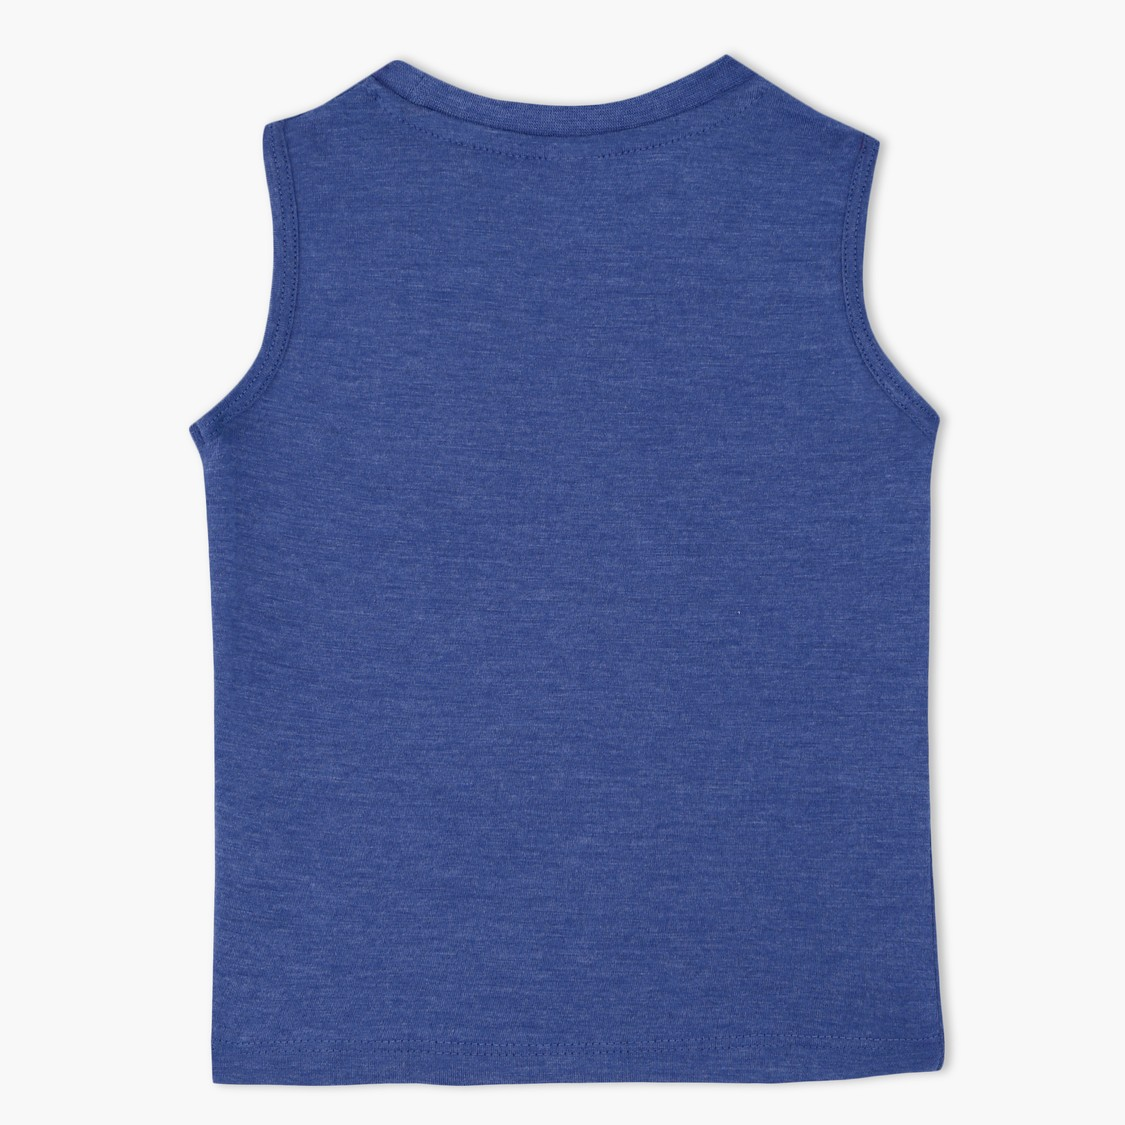 Sleeveless Round Neck T-Shirt with Striped Pocket Print